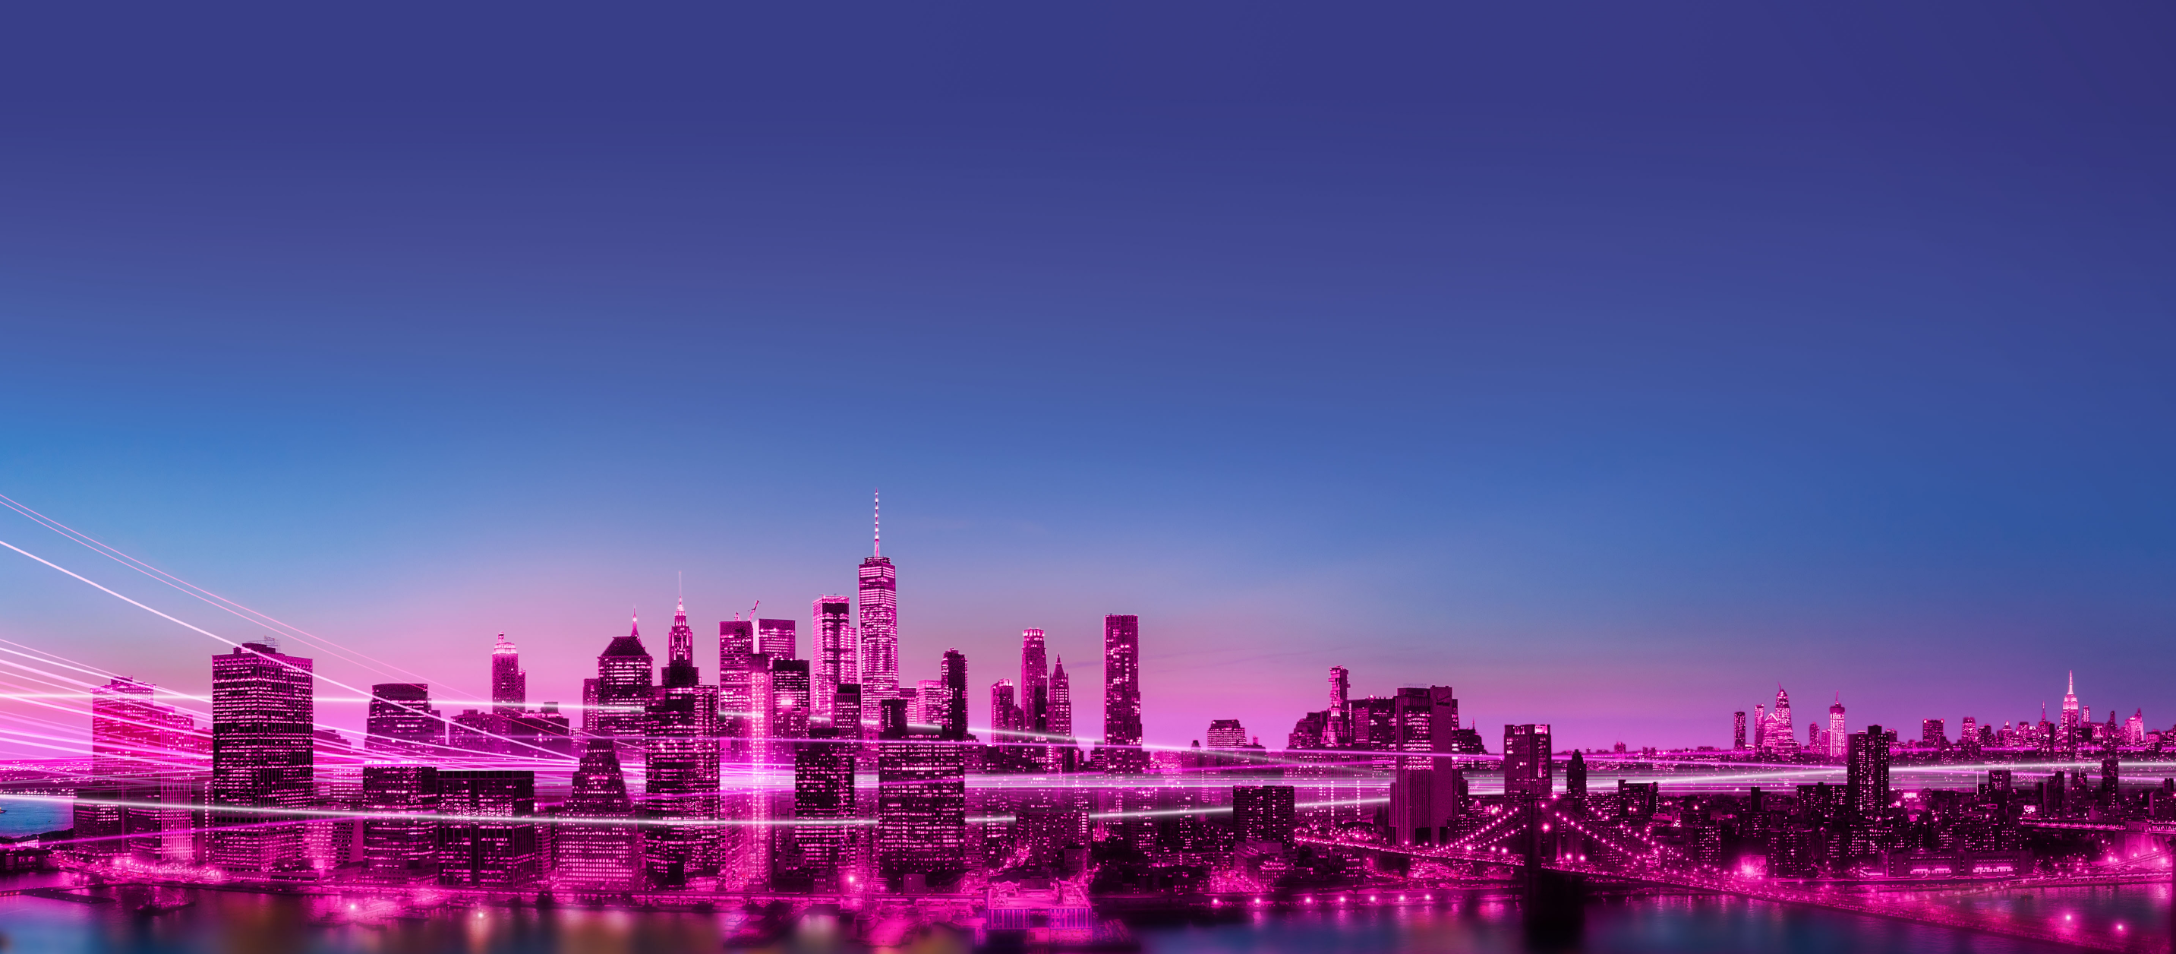 Pink cityscape with streaks of light weaving between buildings